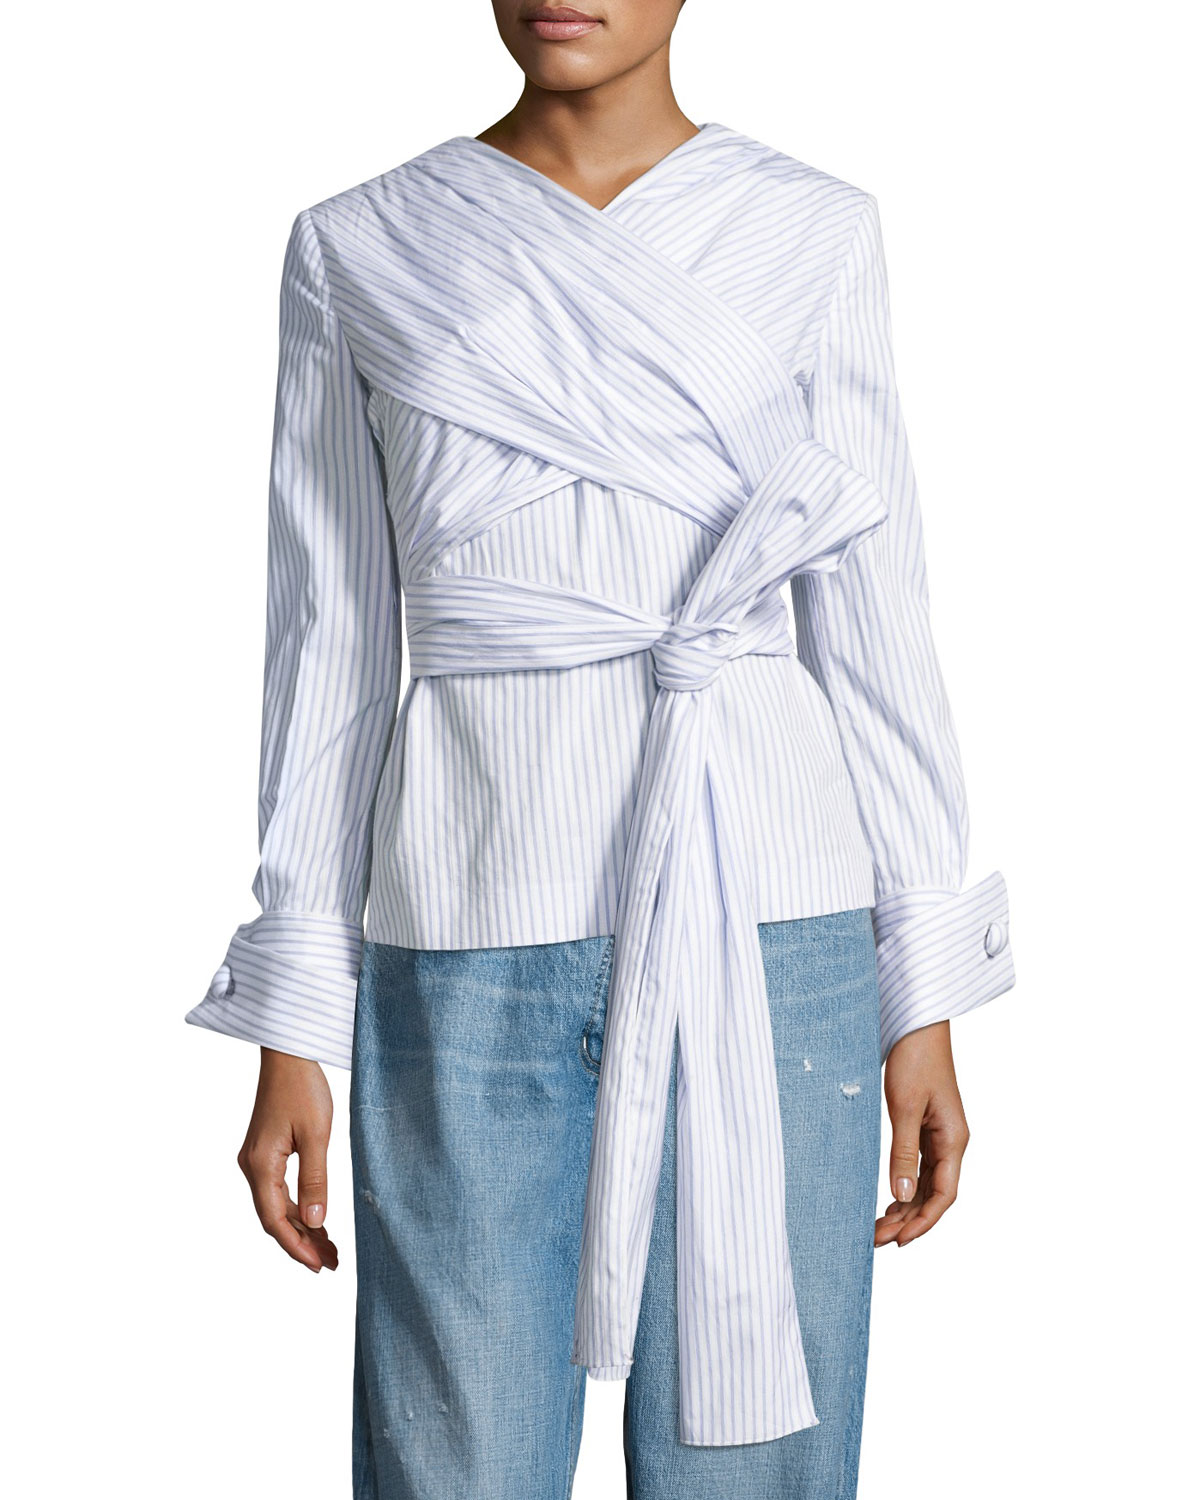 Pinstriped Wrap-Front Blouse, White/Blue